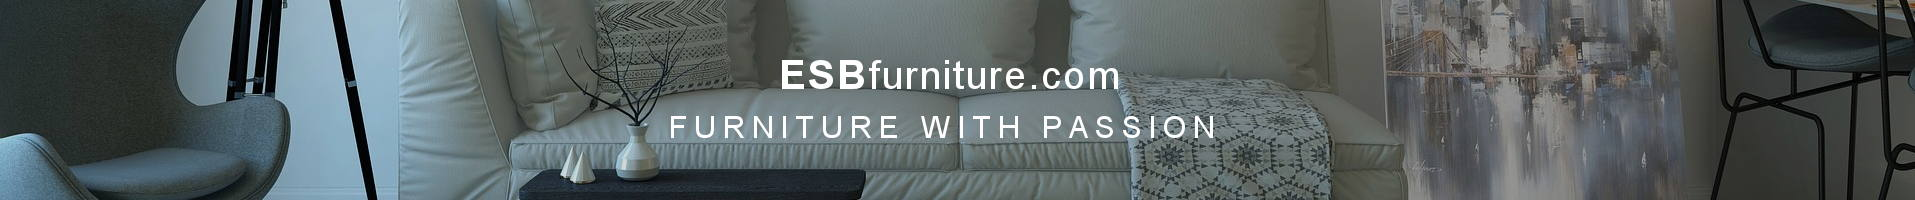 furniture with passion